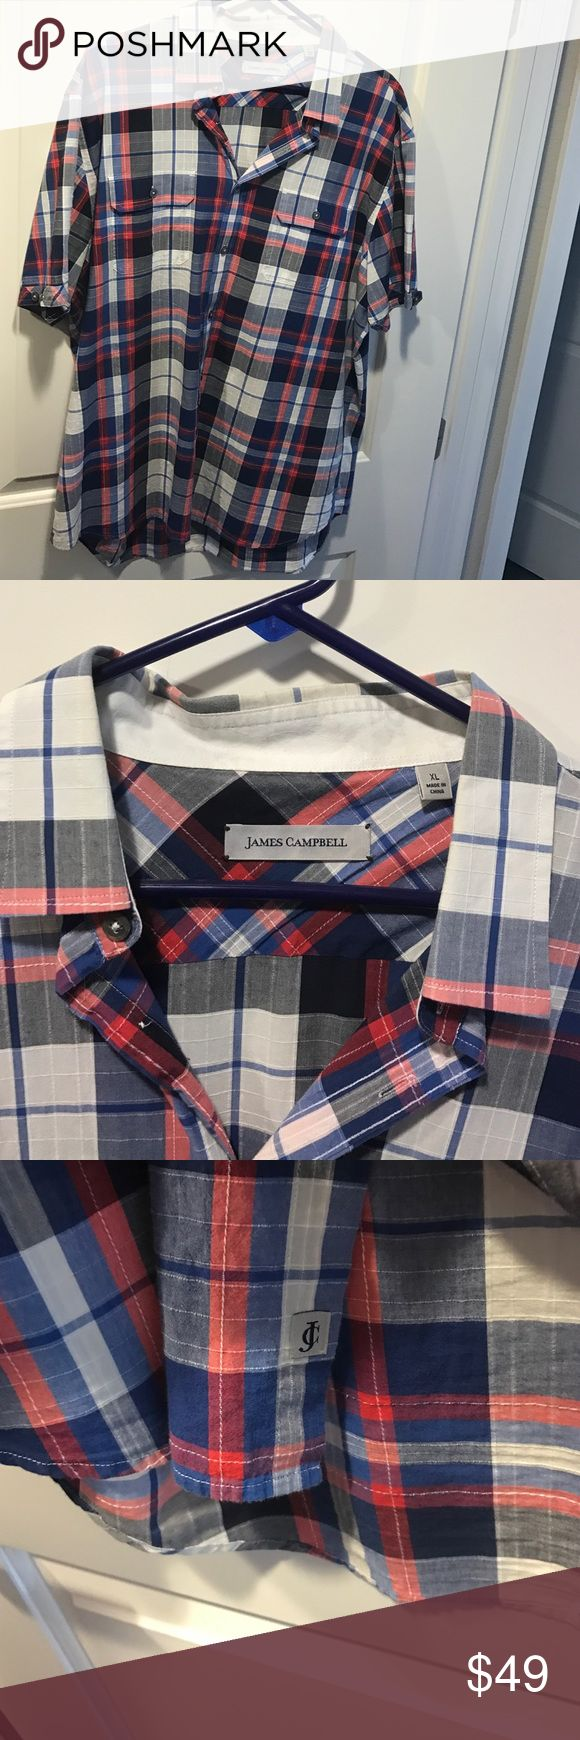 James Campbell - XL - Shortsleeve James Campbell - XL - Short sleeve - Red/white/blue - no stains , rips , tears. NO TRADES James Campbell Shirts Casual Button Down Shirts